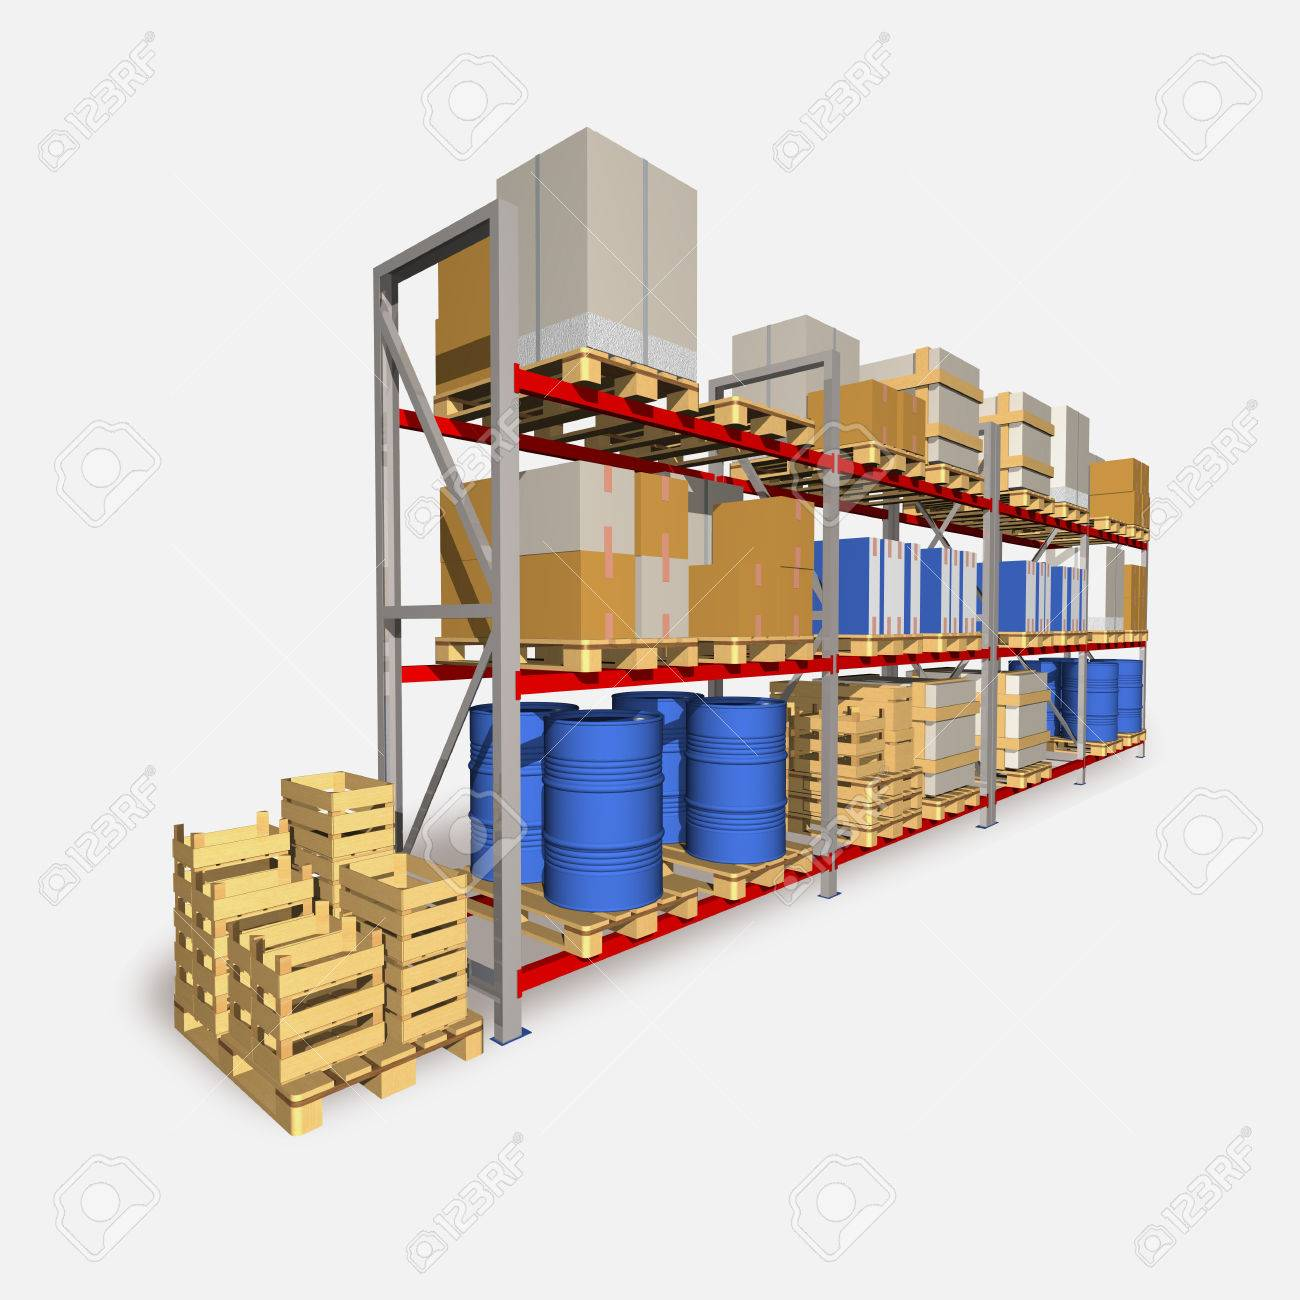 Storage racks and pallets with various products are shown at picture. - 34878289